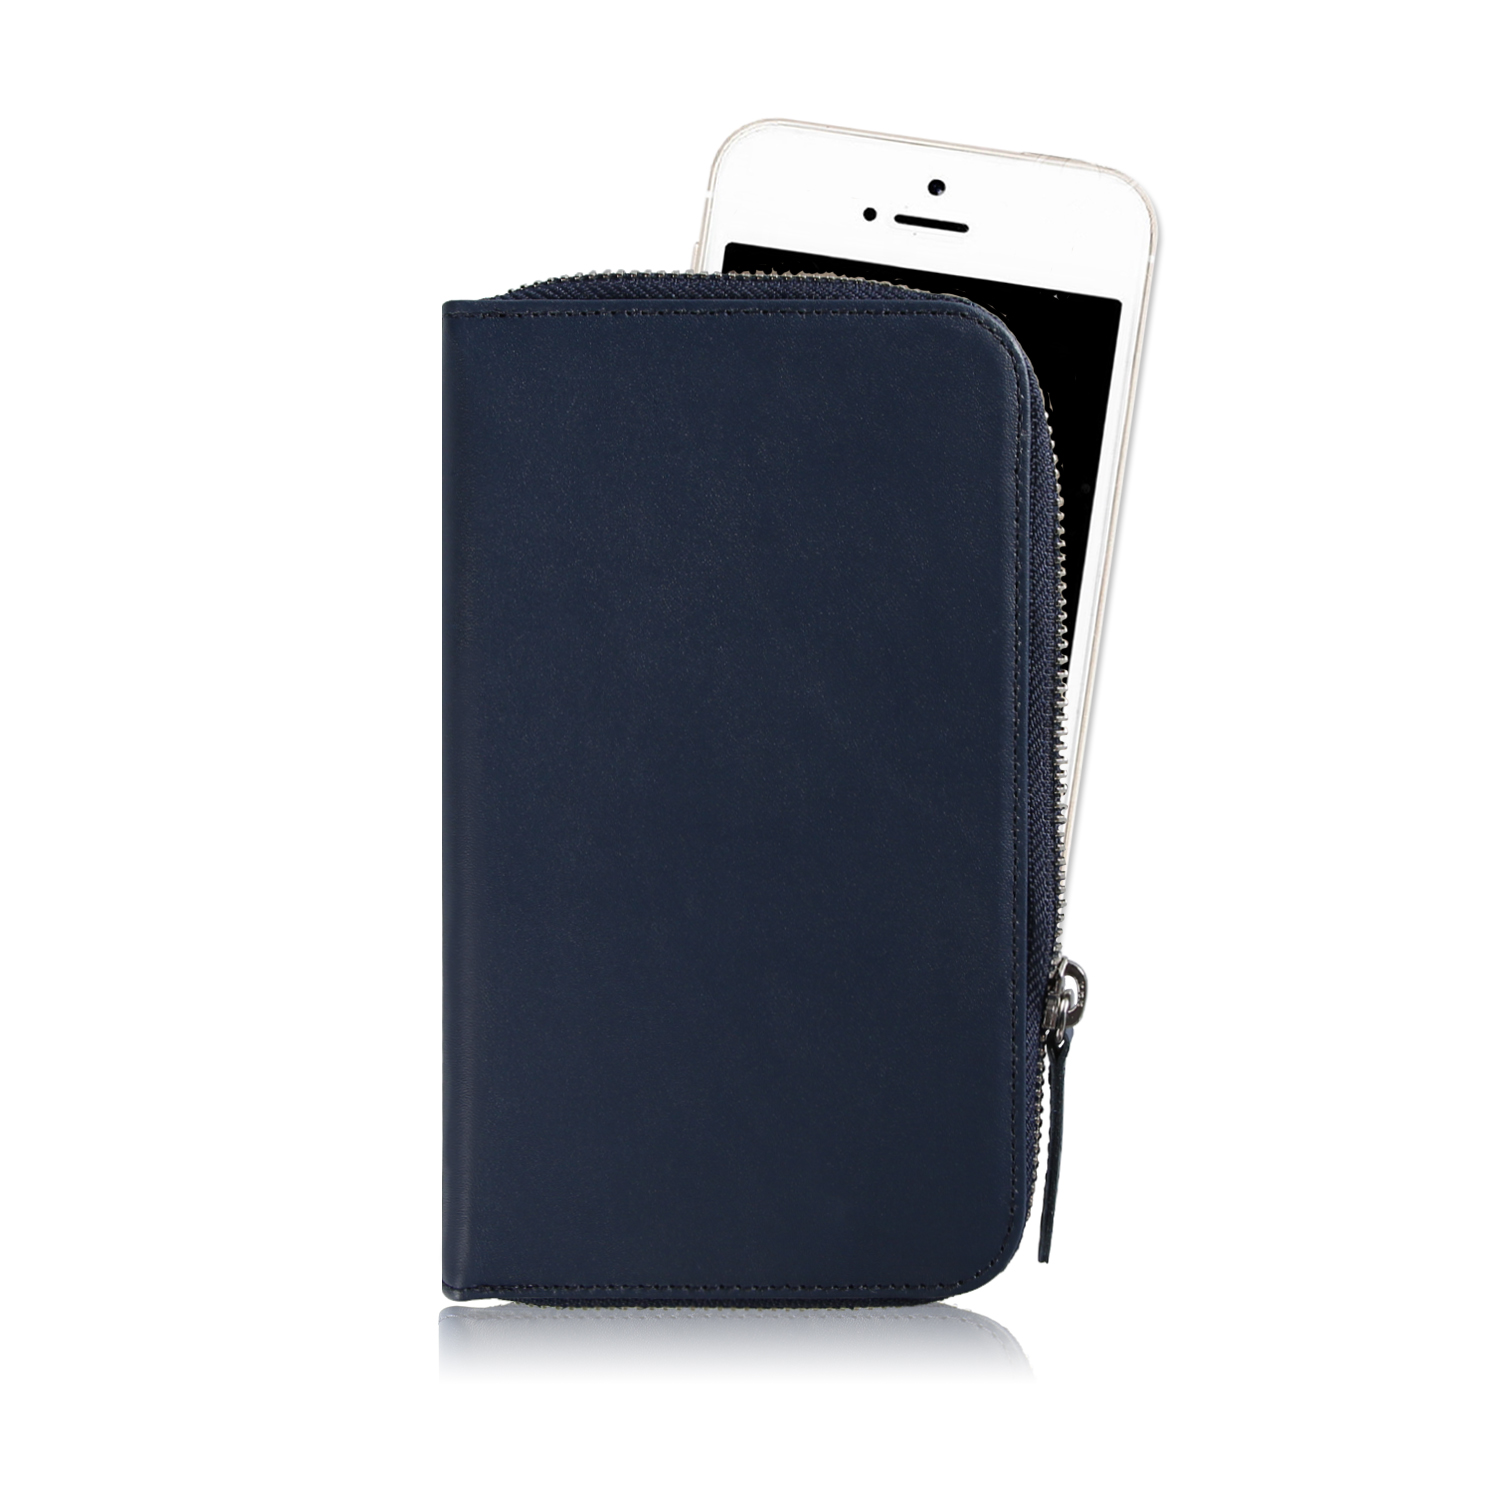 Daily Phone Pocket +_Navy